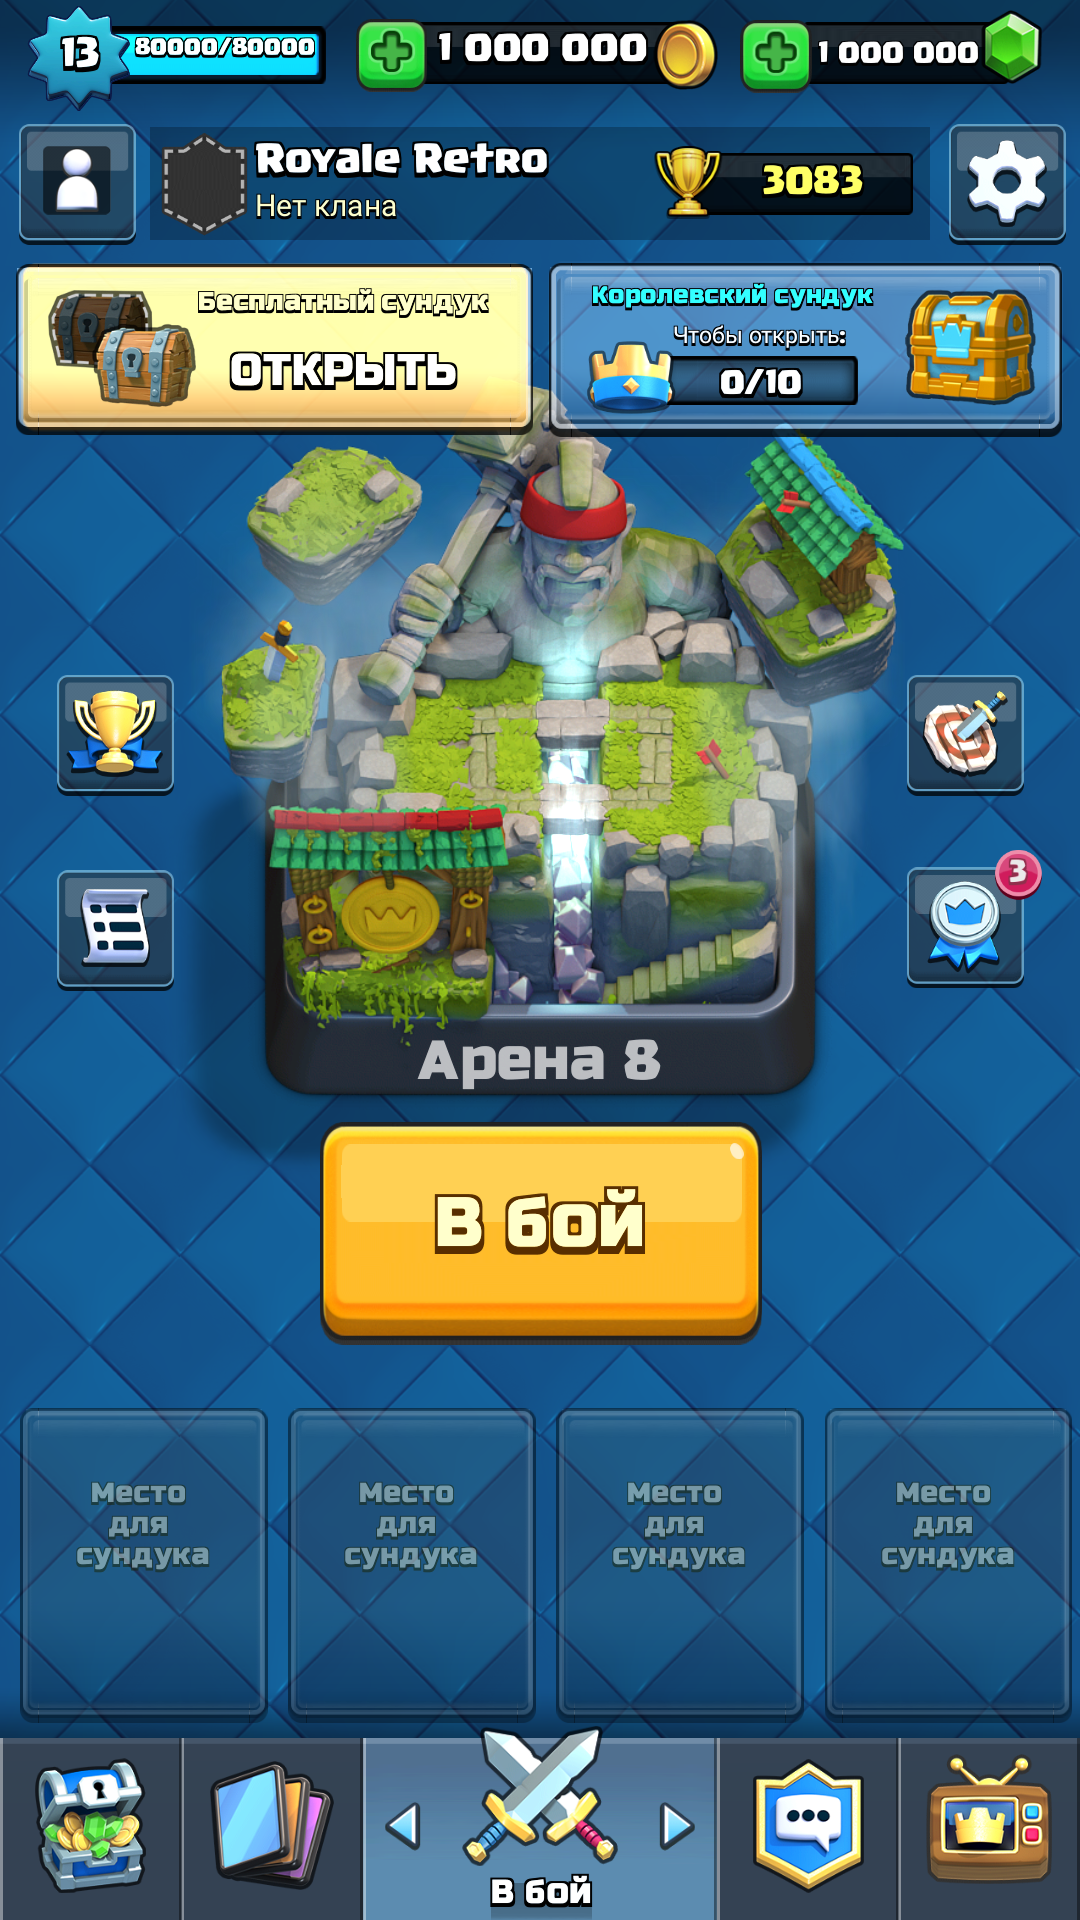 Royale Retro - arena